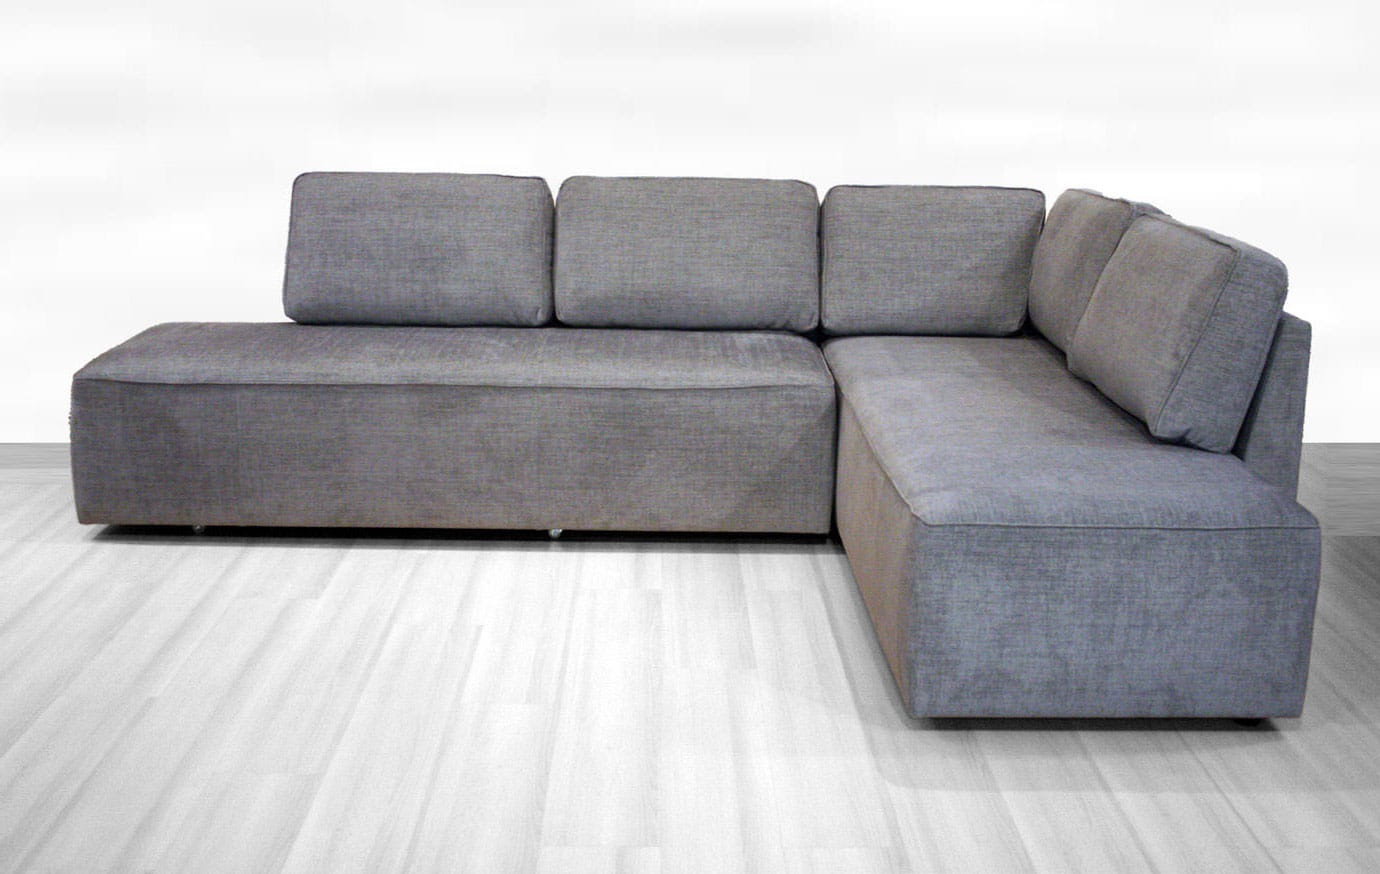 New York Sectional Sofa Sleeper (Queen Size) RHF by Luonto Furniture